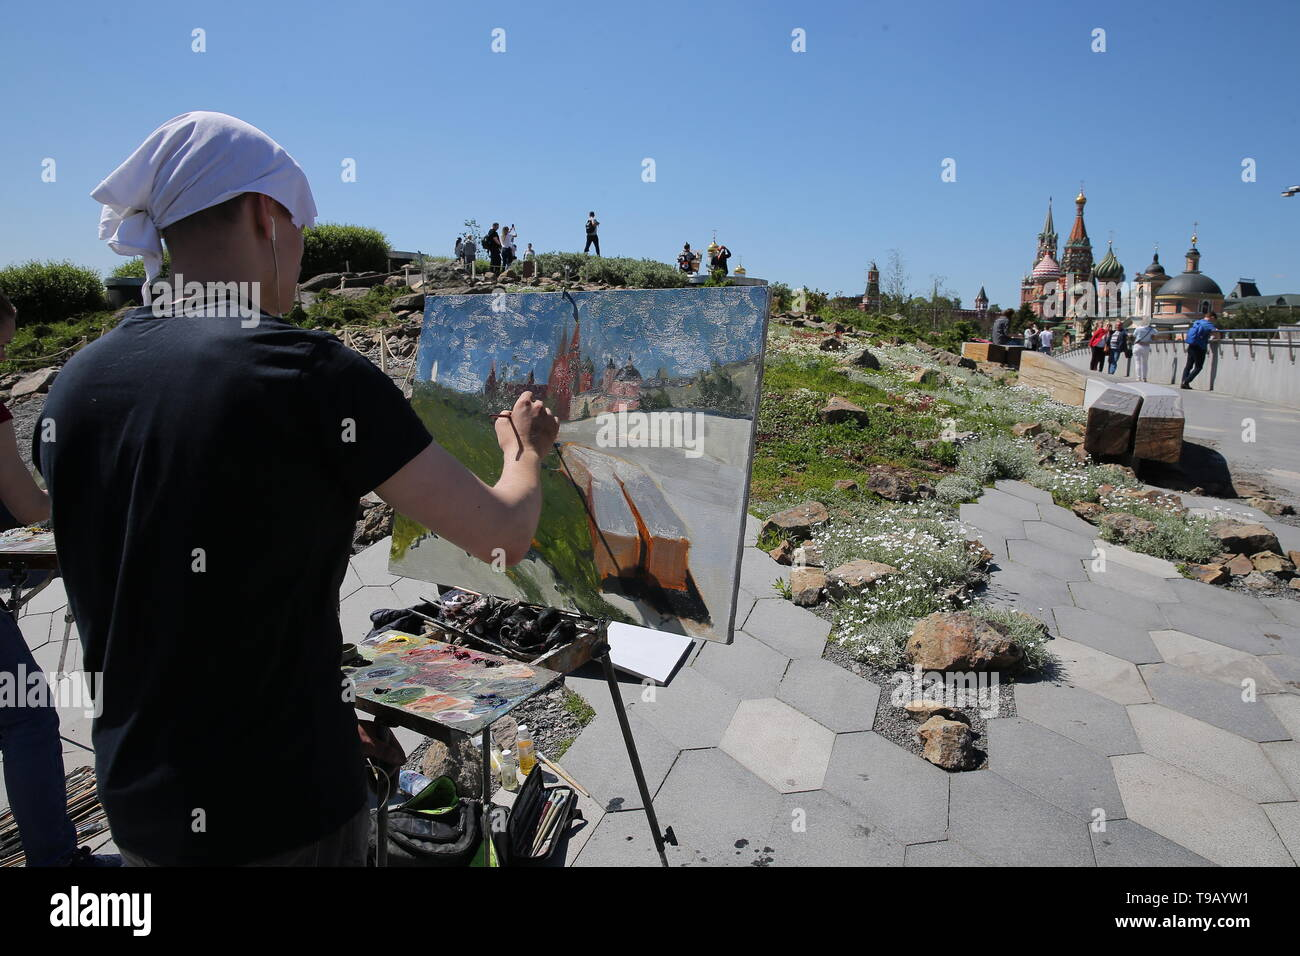 Moscow, Russia. 18th May, 2019. MOSCOW, RUSSIA - MAY 18, 2019: A man during the 9th Draw St Basil's Cathedral art festival. Gavriil Grigorov/TASS Credit: ITAR-TASS News Agency/Alamy Live News - Stock Image